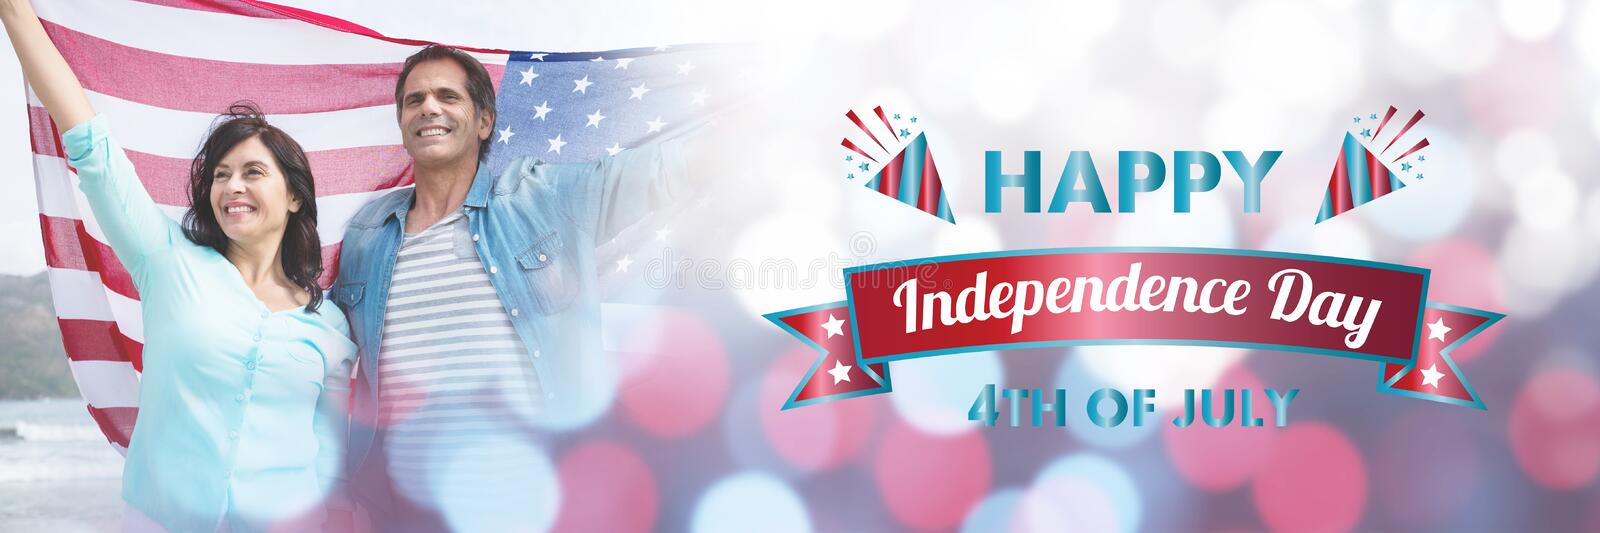 Composite image of digitally generated image of happy independence day message stock illustration